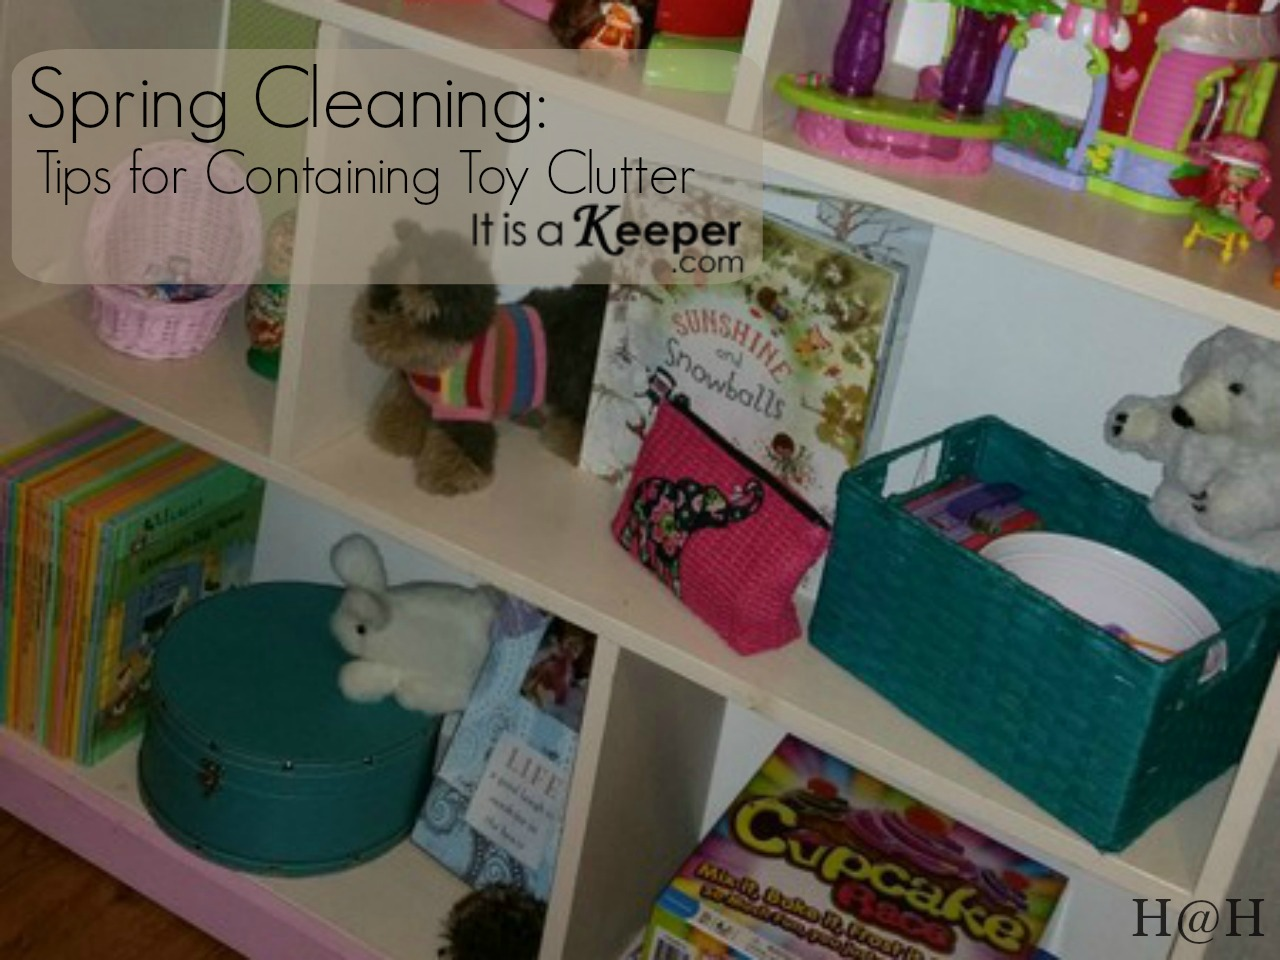 Spring Cleaning Tips for Containing the Toy Clutter